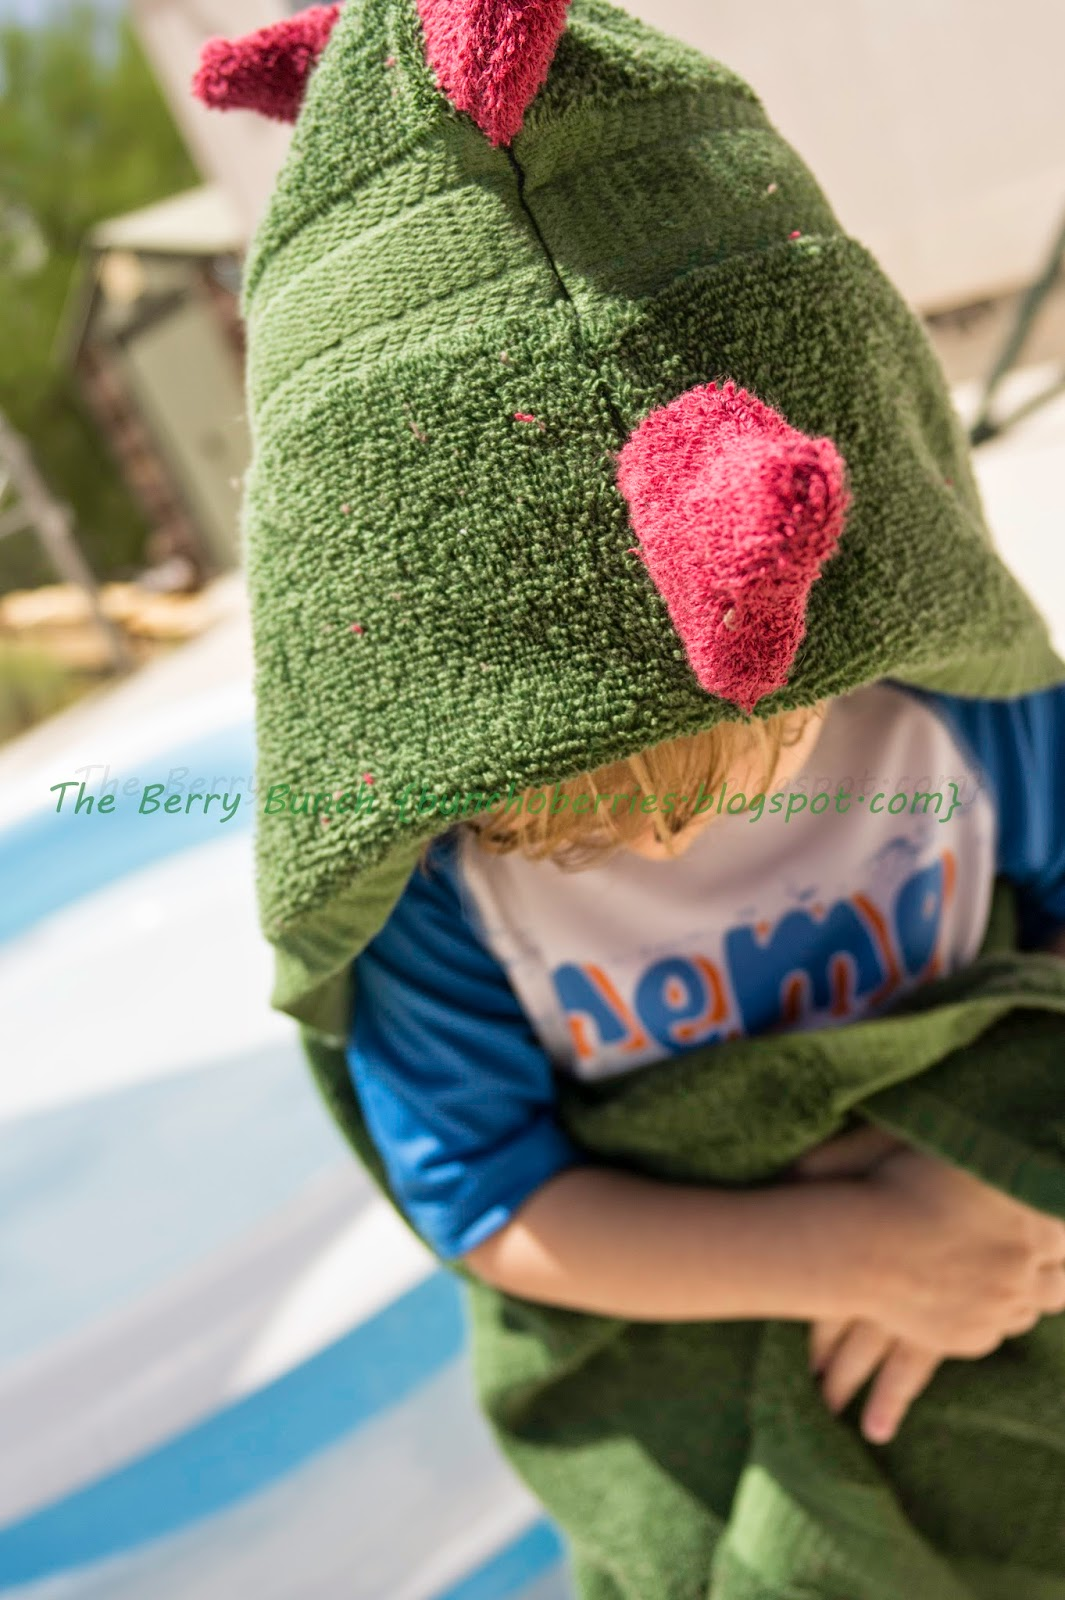 The Berry Bunch: August Mystery Challenge: Cover Up: Dinosaur Hooded Towel